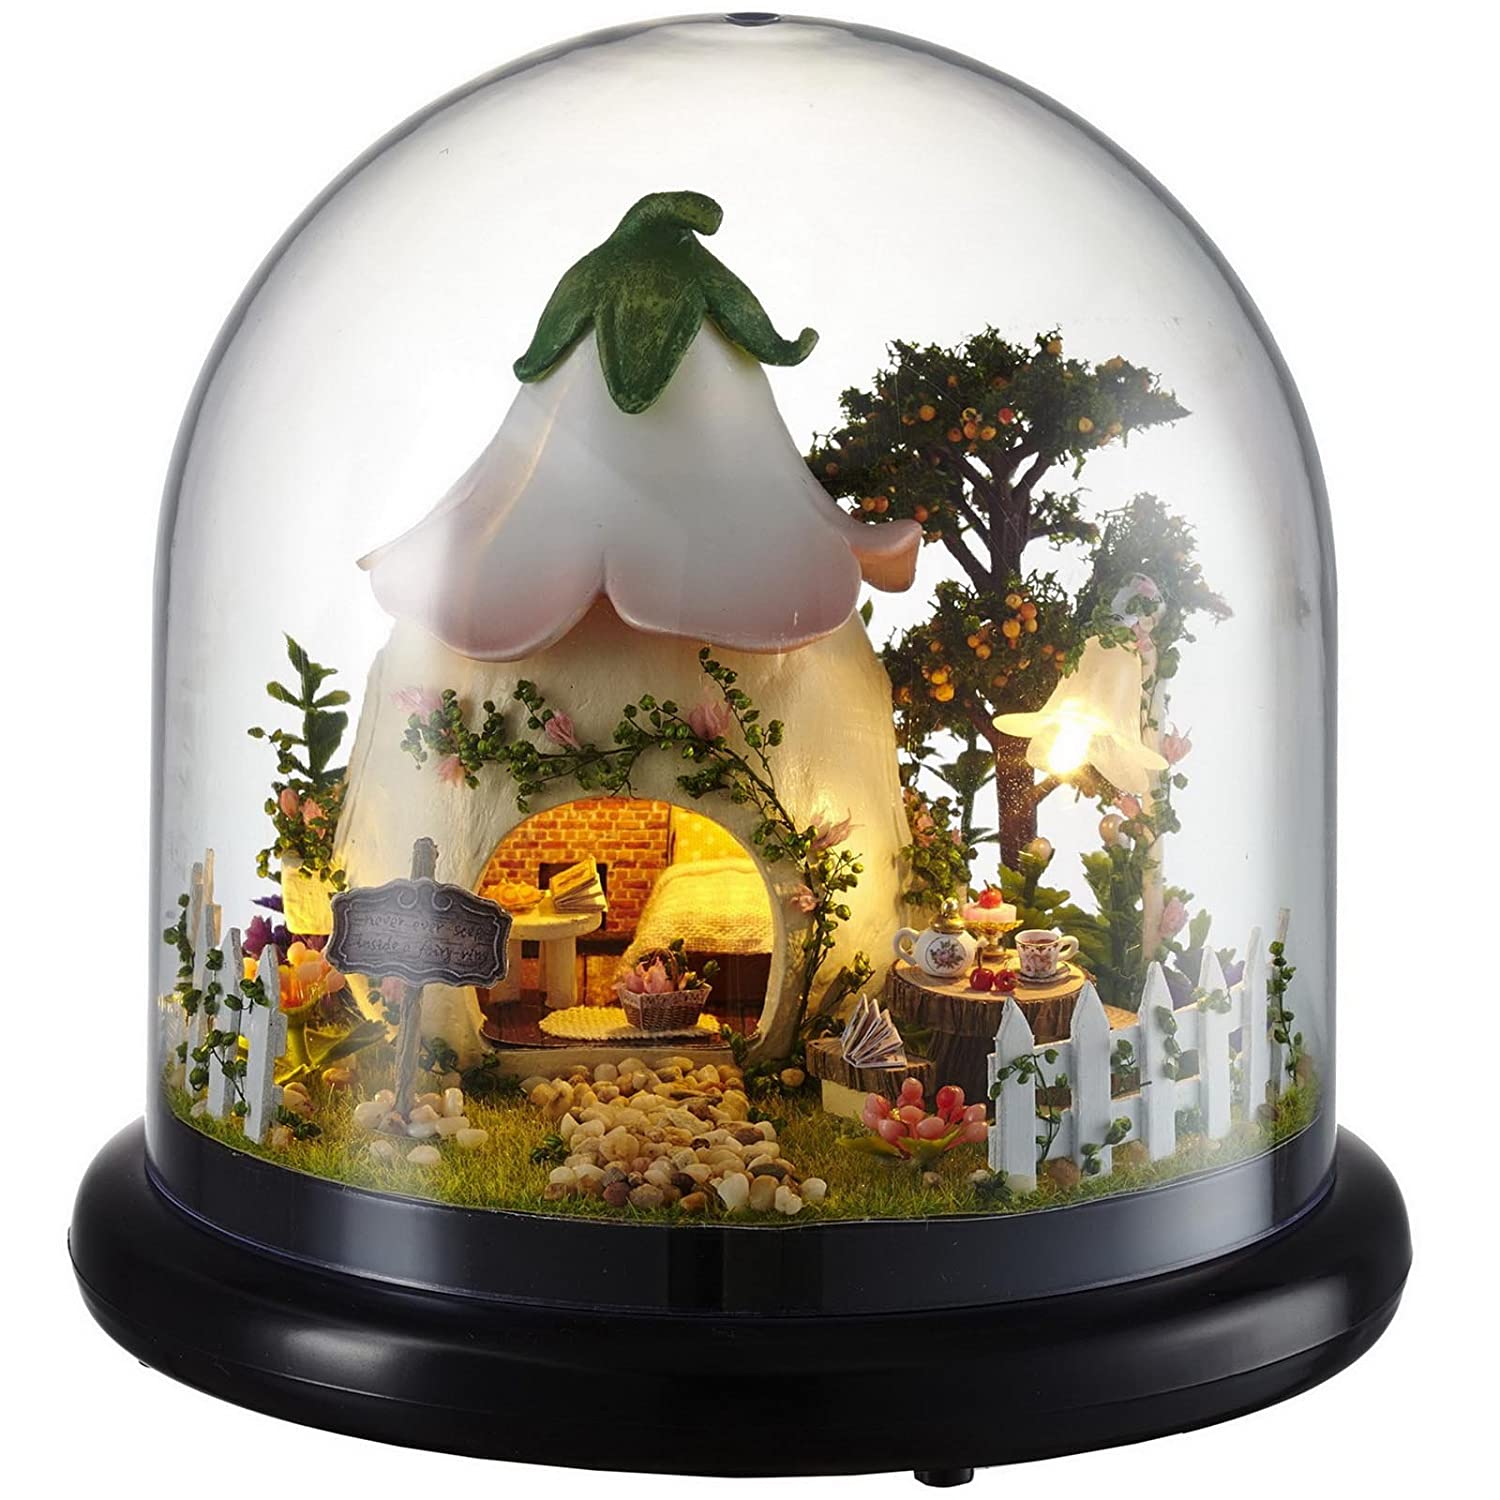 Model Building 2019 Latest Design Diy Wooden House Miniaturas With Furniture Diy Miniature Forest House Dollhouse Glass Ball Toy For Children Girls Birthday Gift Selected Material